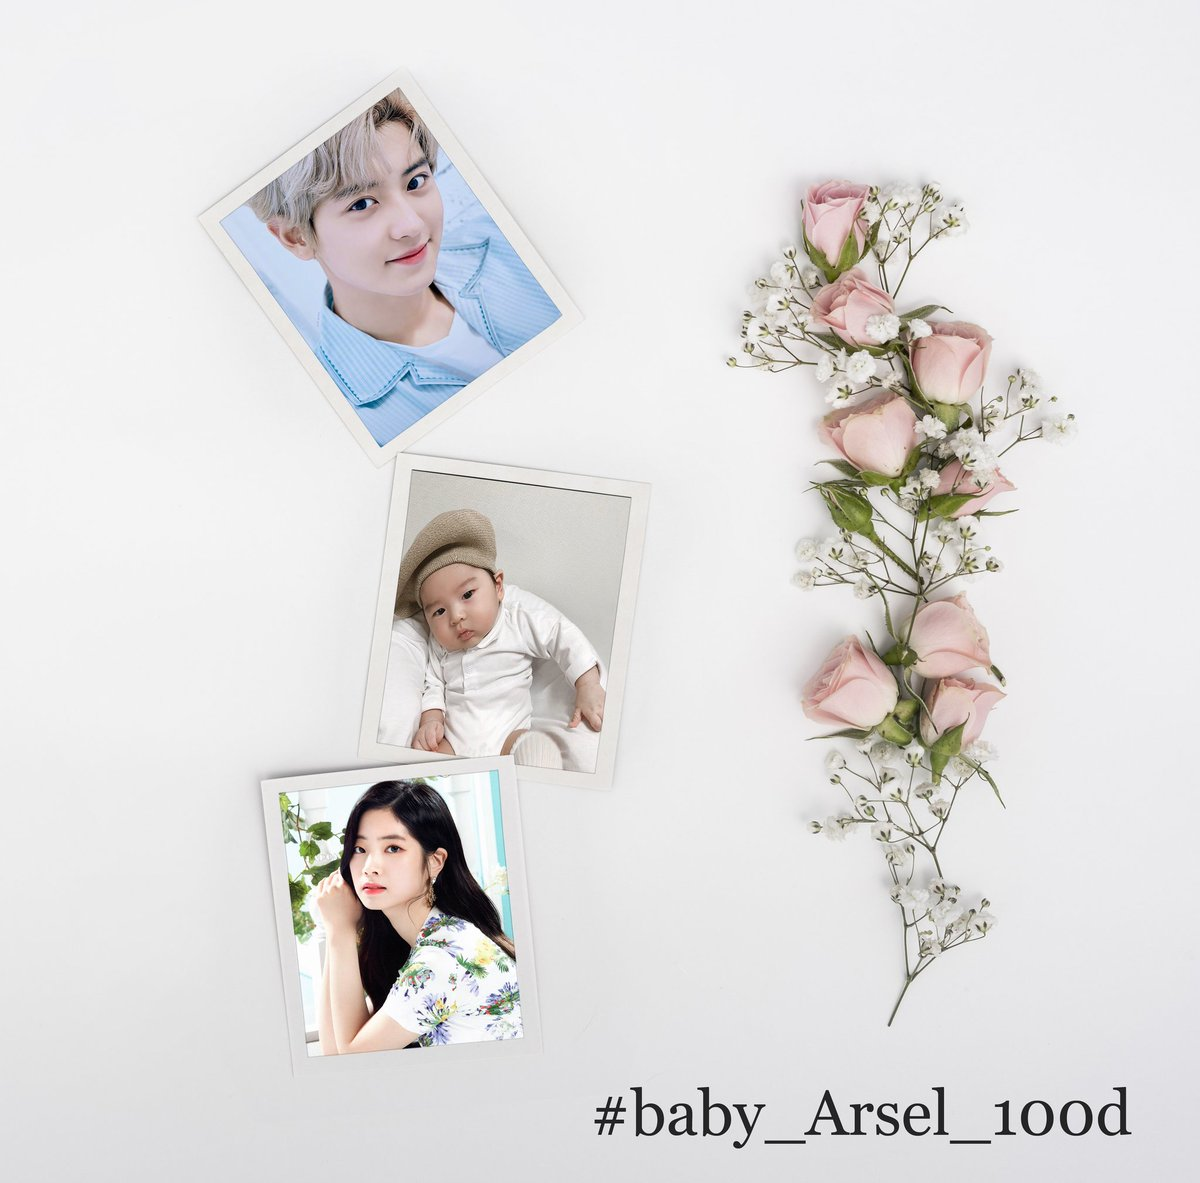 ️️️ ️️ ️️ ㅤㅤ         #baby_arsel_100dㅤ ㅤㅤㅤ━━━━━━━━━━━ ️Congratulations baby Arsel on reaching 100 days! ✦ 25 ━ August 2020   ㅤㅤㅤ⏰ 19.00 PM - 21.00 PM ㅤㅤㅤ📍@SebongstanCafe ㅤㅤㅤ ㅤㅤㅤ https://t.co/IPNaduGatb